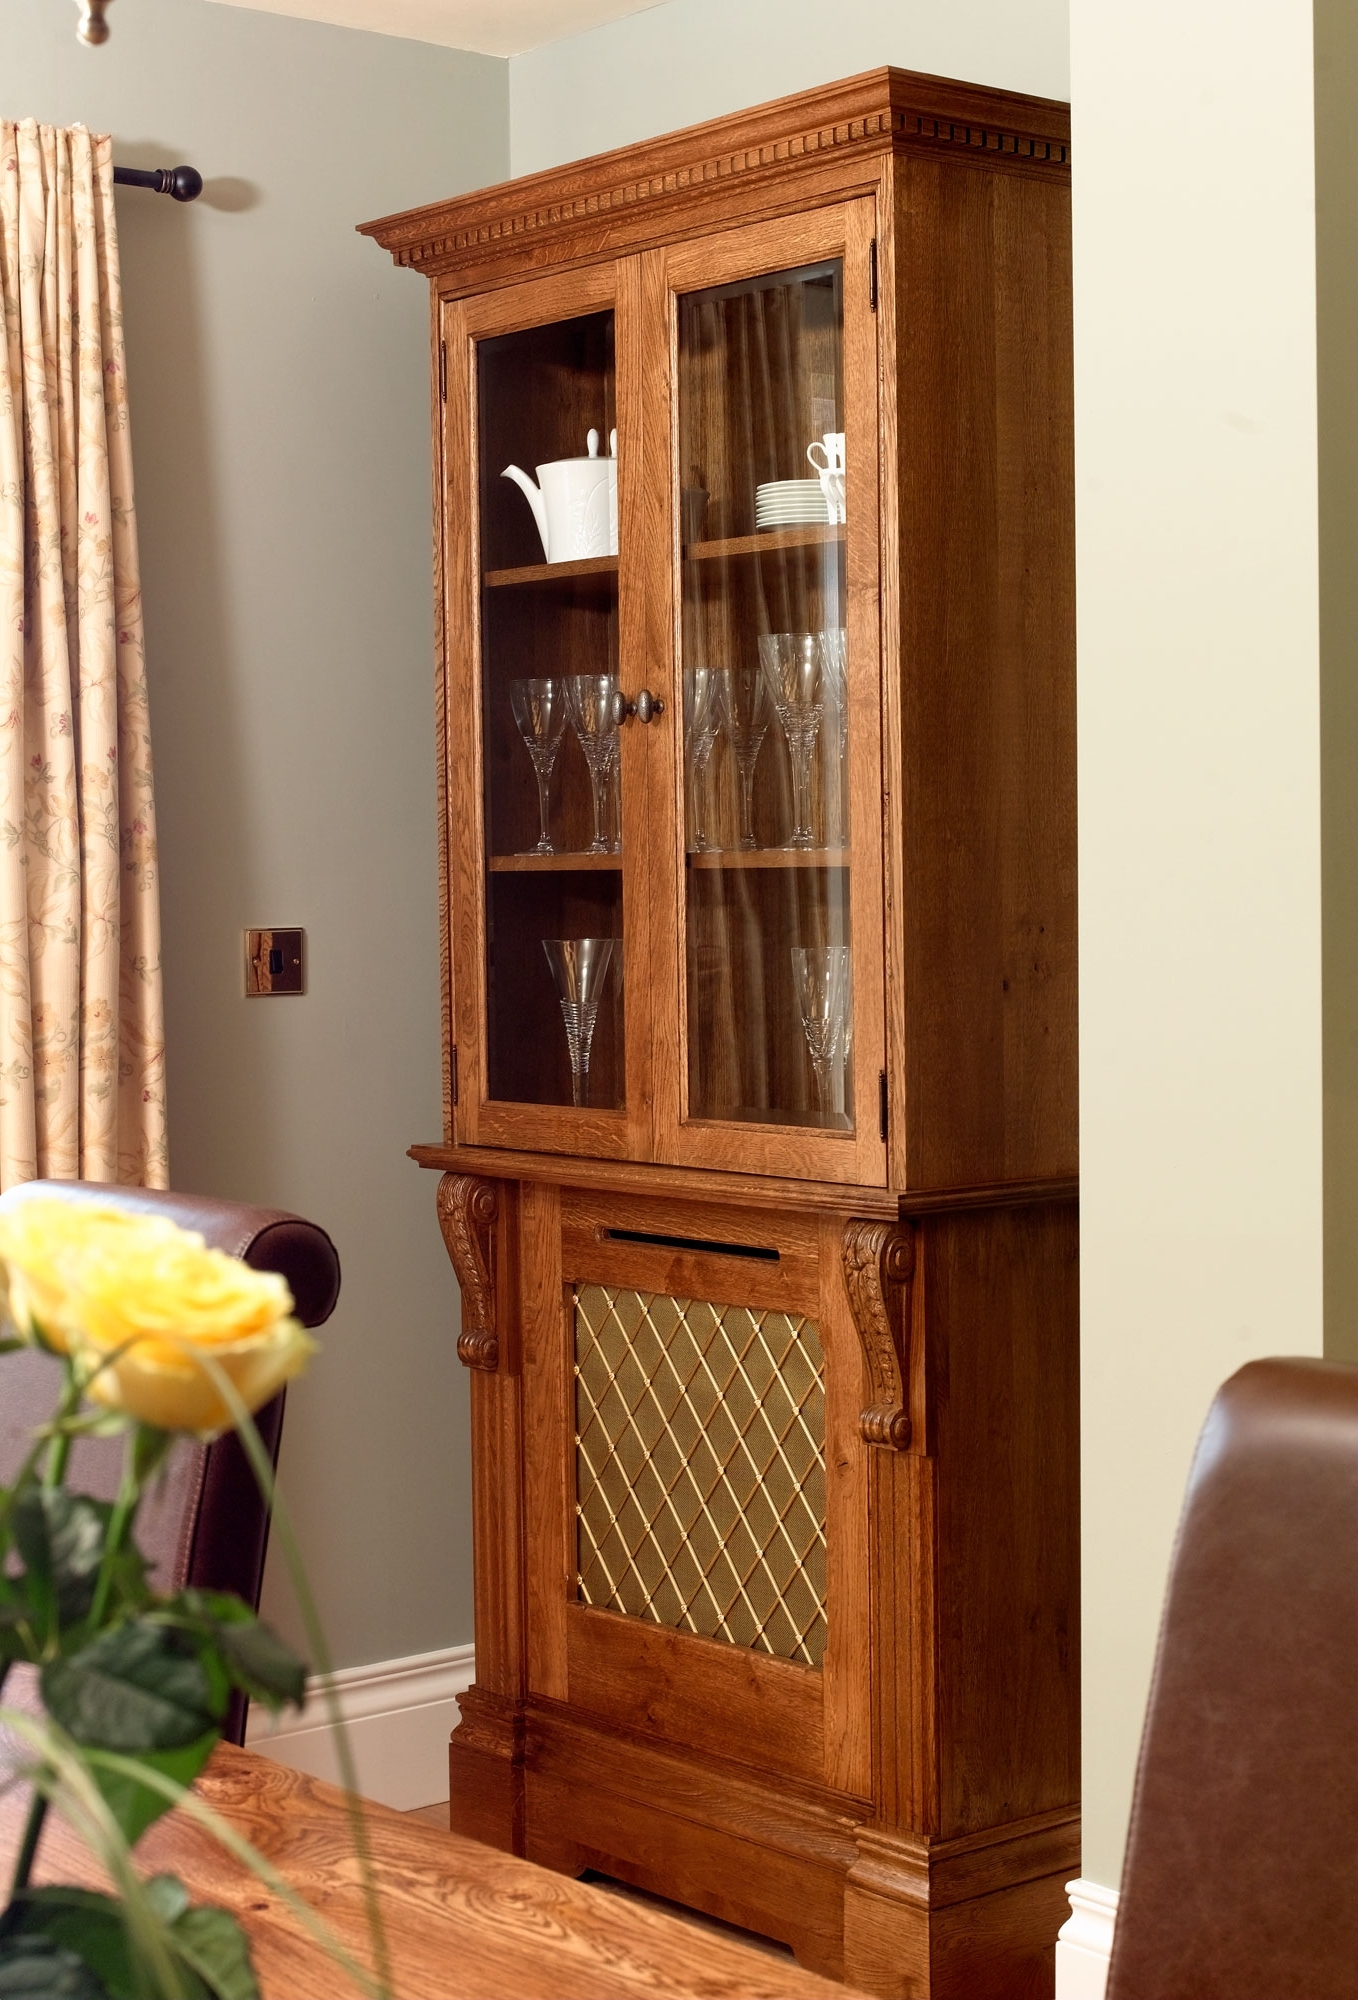 Radiator Bookcases Regarding Most Recently Released Bookcases – Radiator Cabinets – Radiator Covers With Bookcase (View 10 of 15)